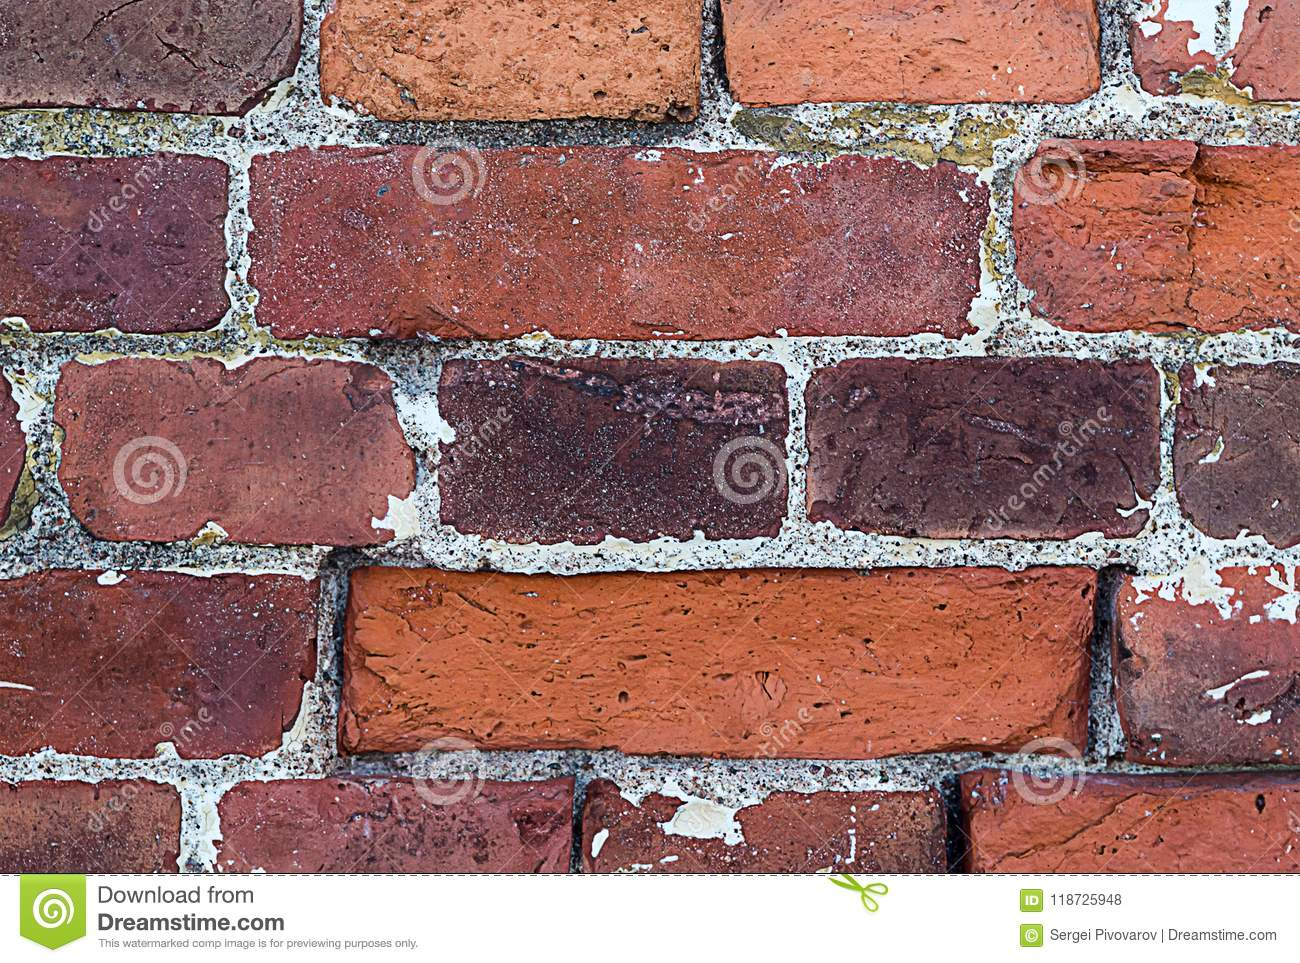 Part of an old weathered brick wall with cement lines seams rectangular blocks